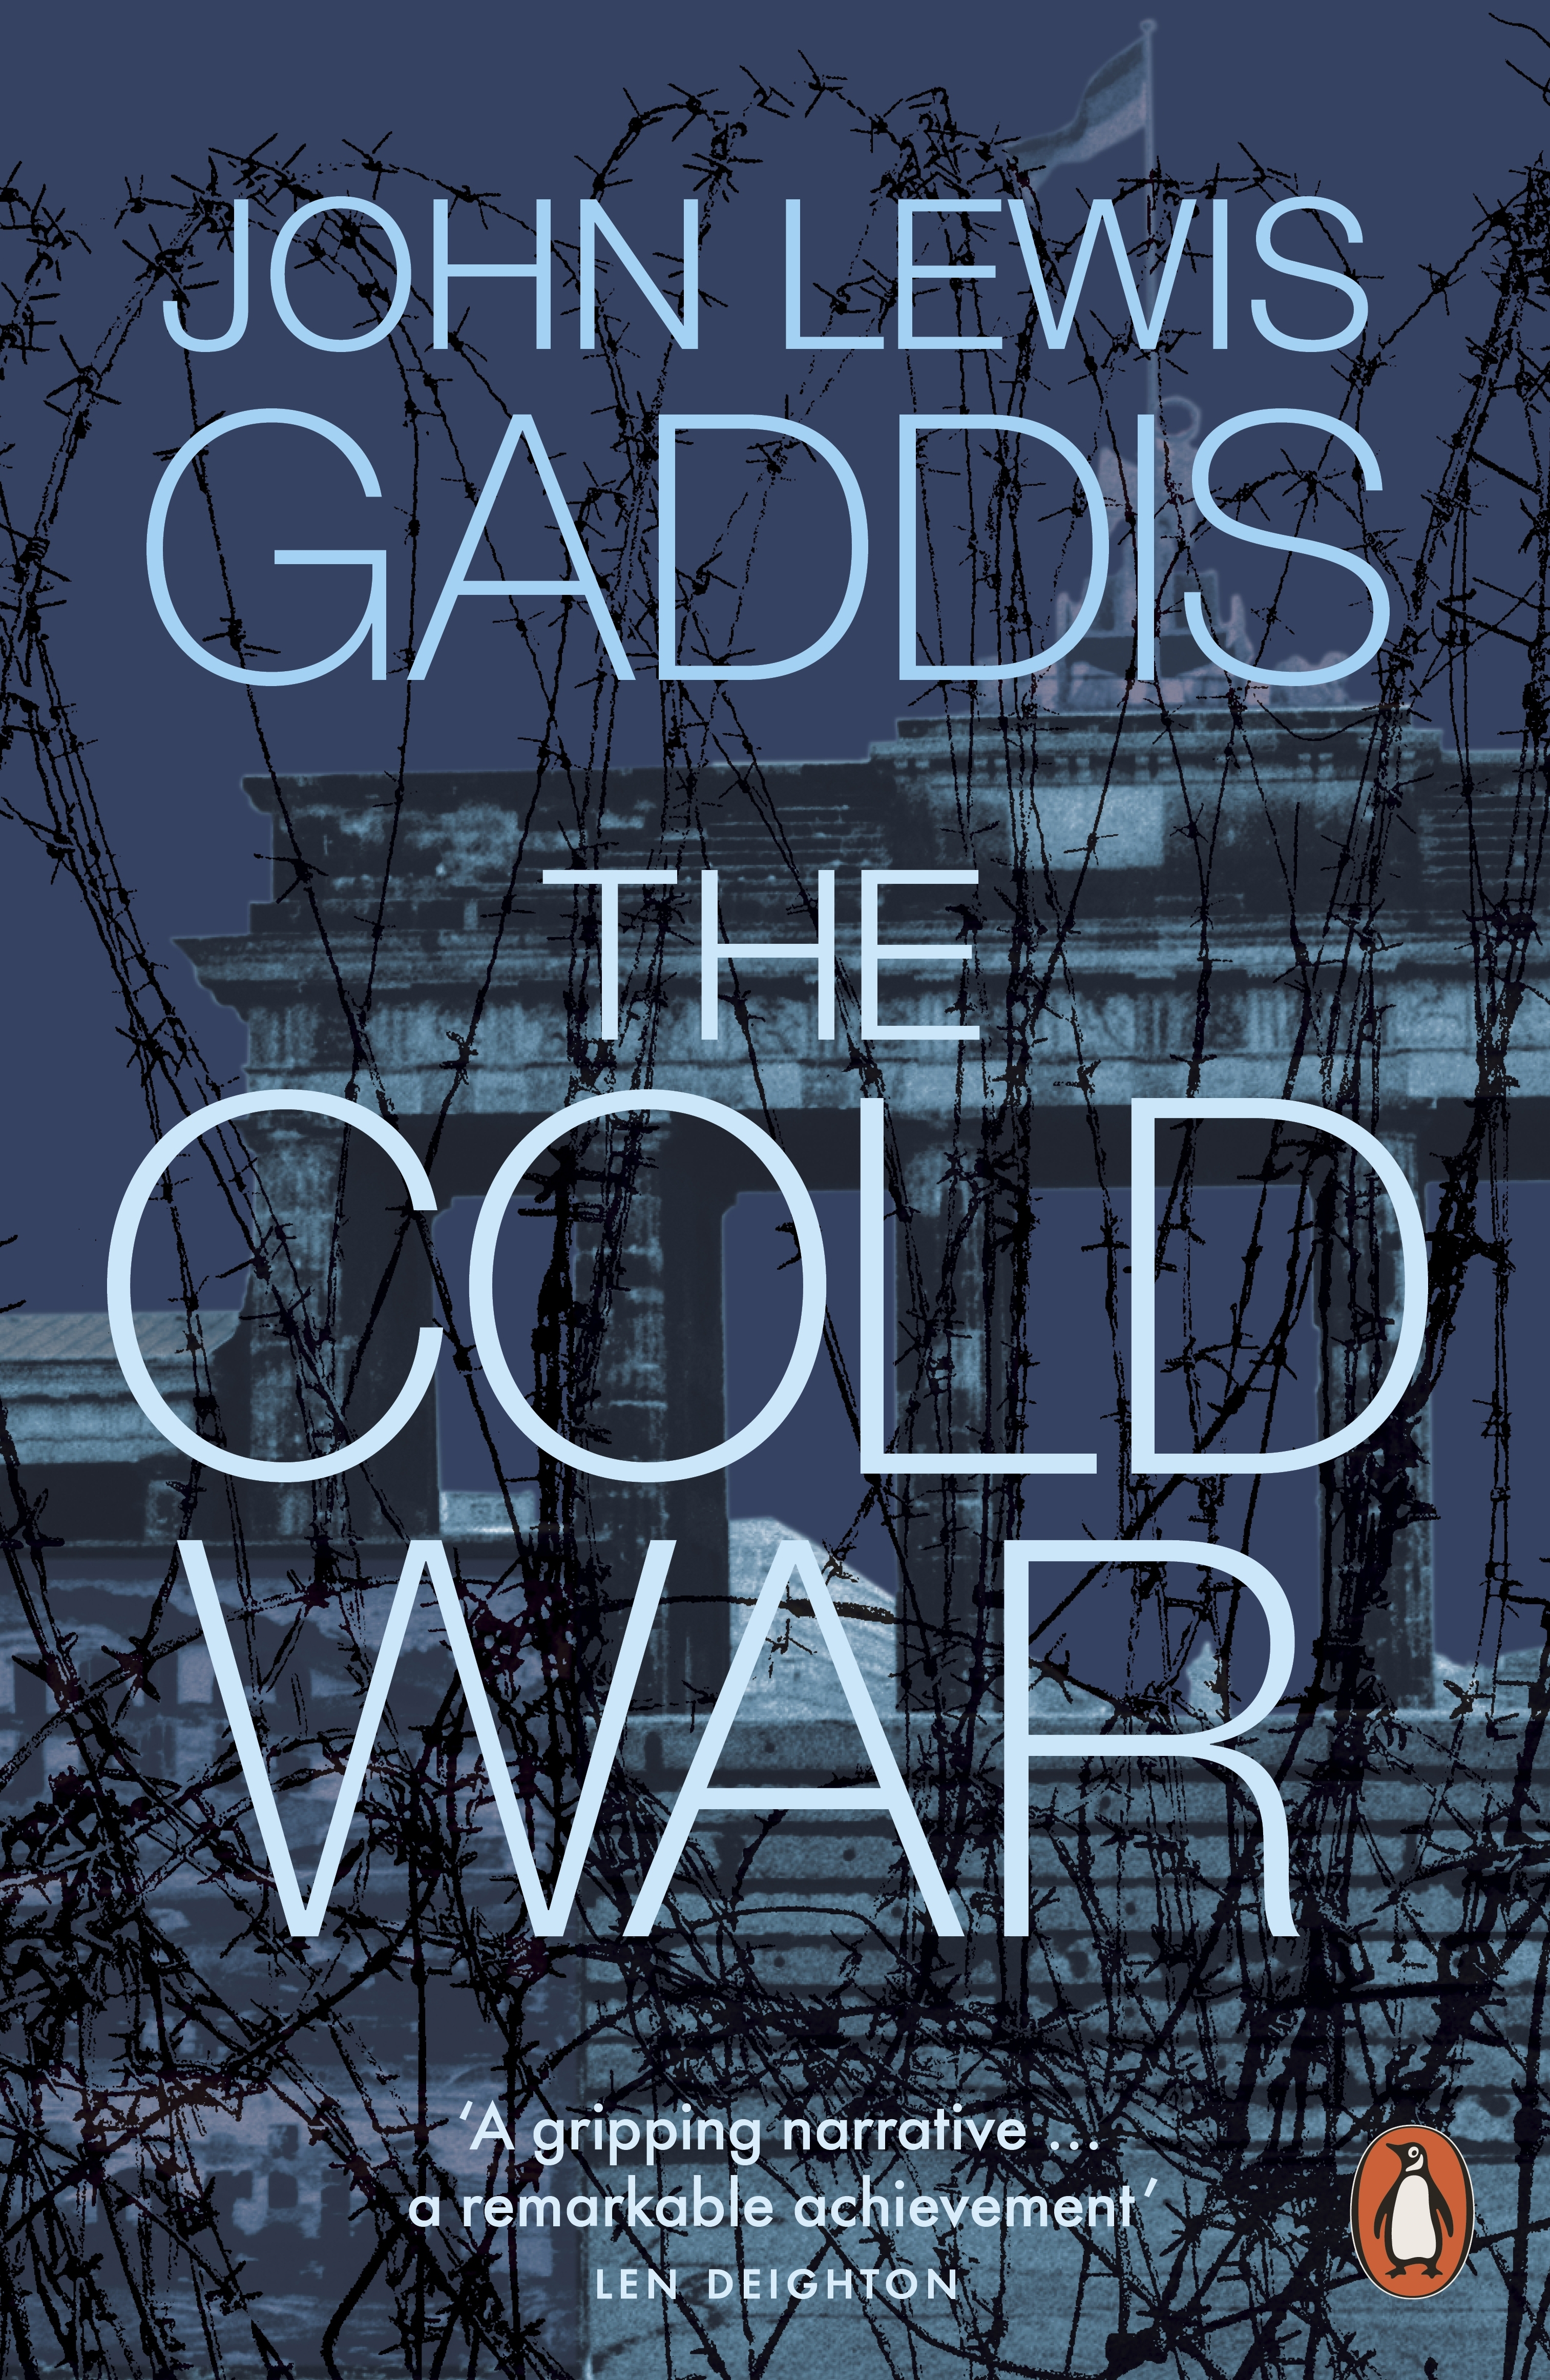 a literary analysis of strategies of containment by john lewis gaddis John lewis gaddis is the robert a lovett professor of history at yale university his previous books include the united states and the origins of the cold war strategies.